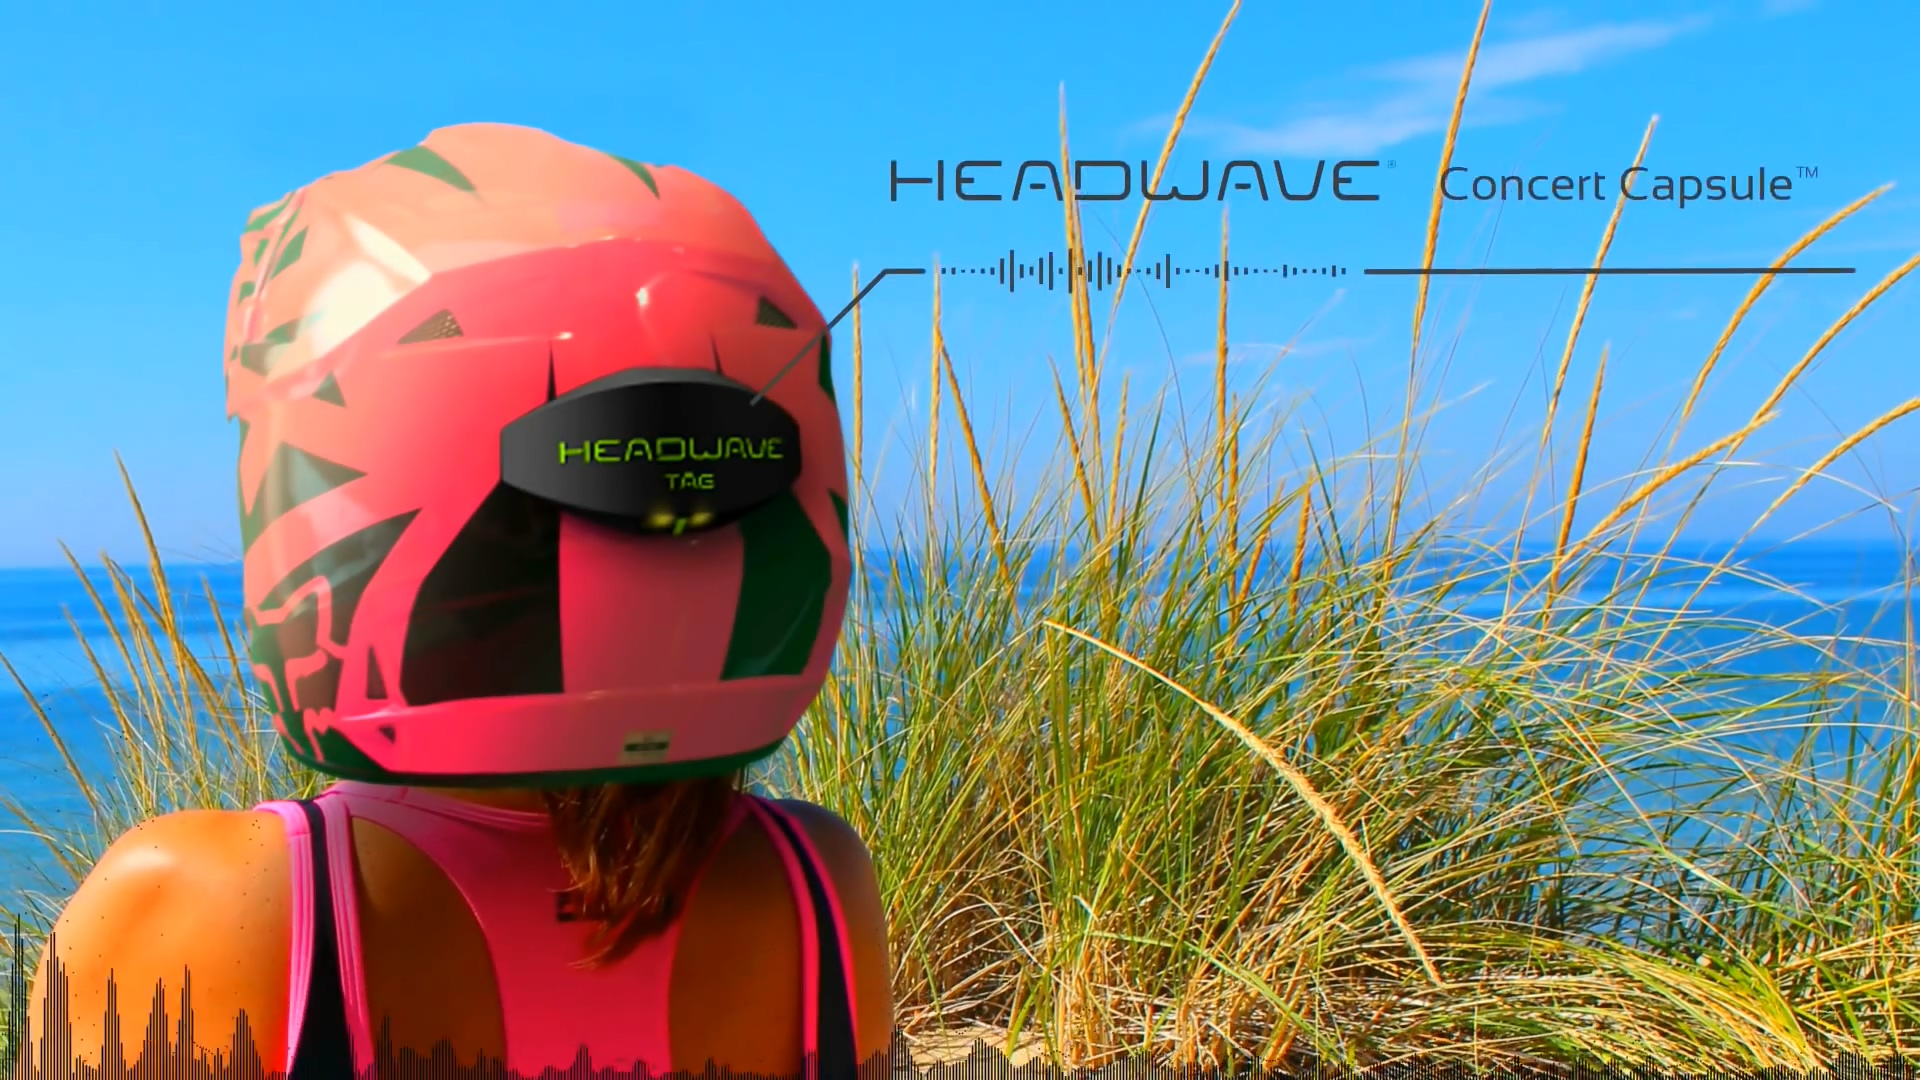 Headwave TaG, The World's First Concert Capsule (5)